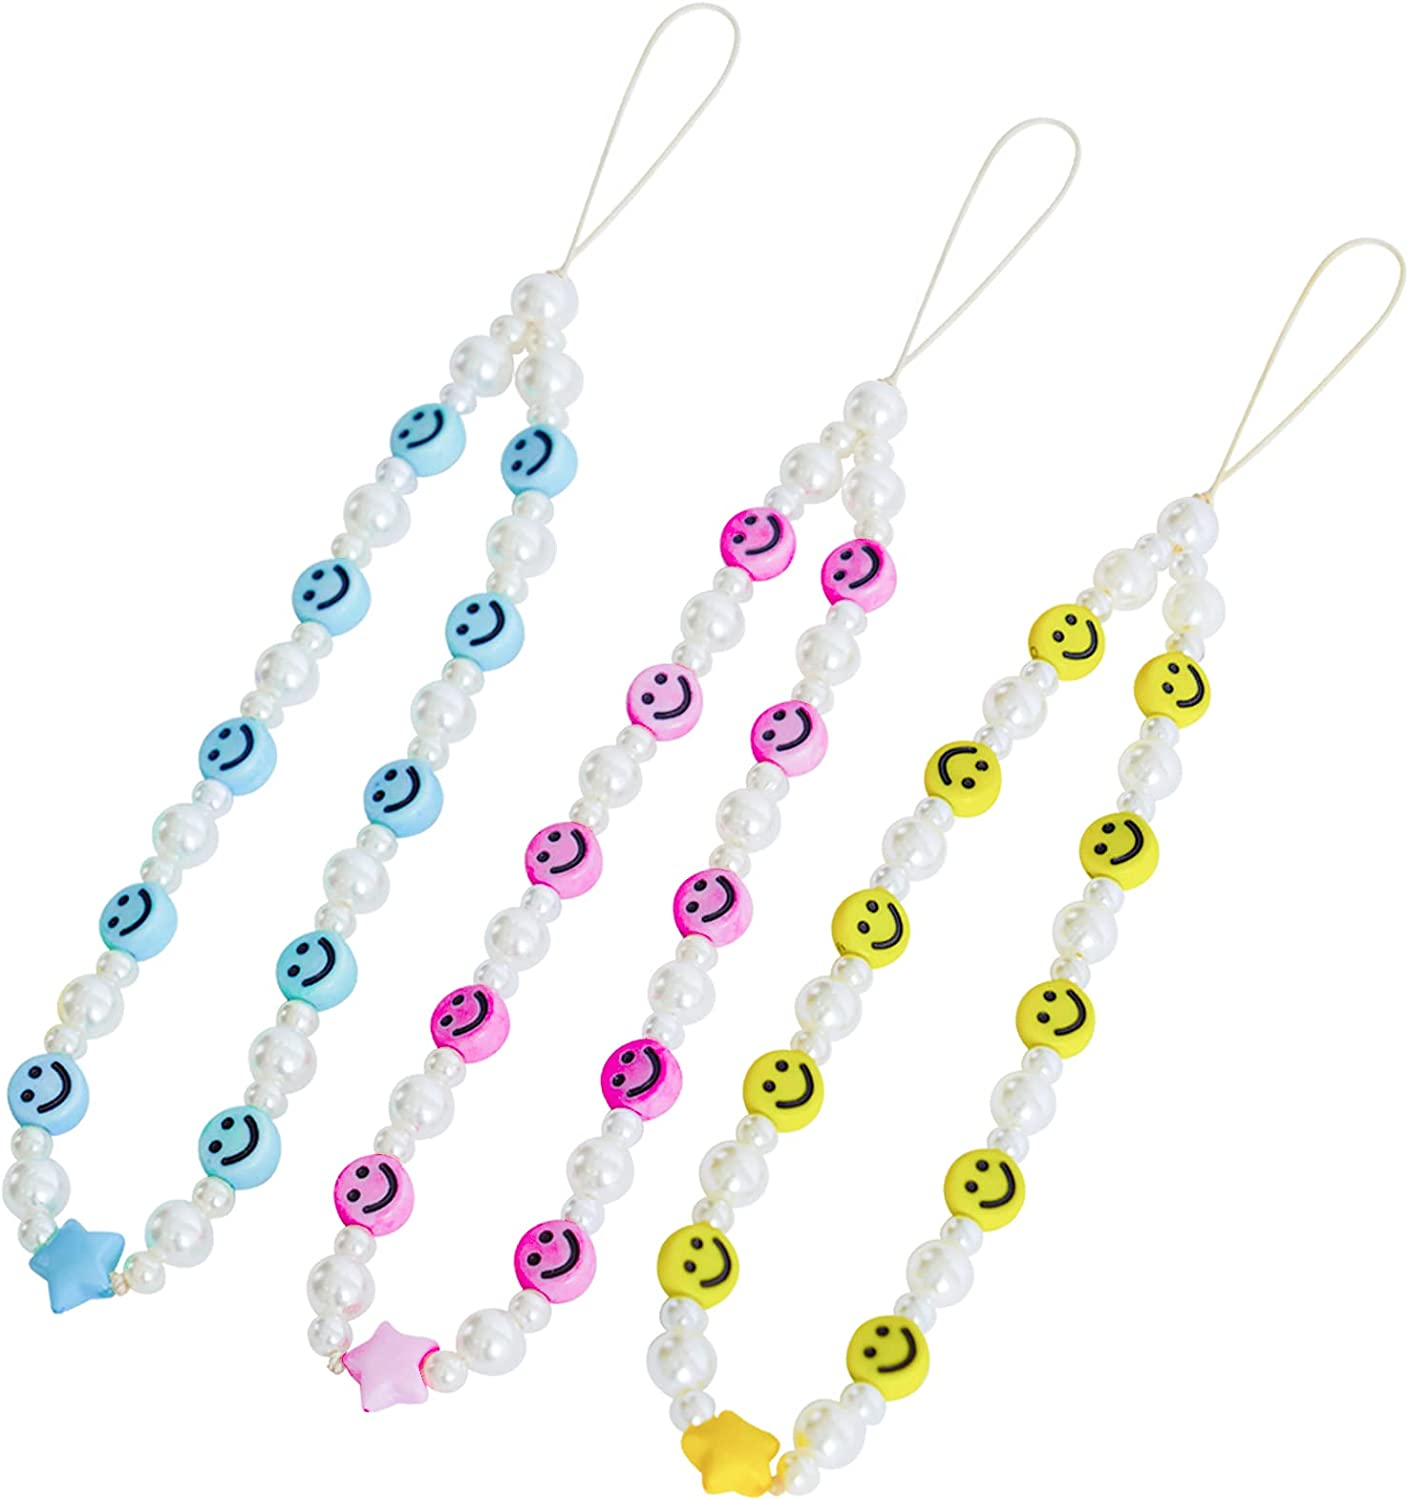 3PCS Beaded Phone Max 43% OFF Strap Smiley Lanyard Department store Y2K Wrist 90S Face